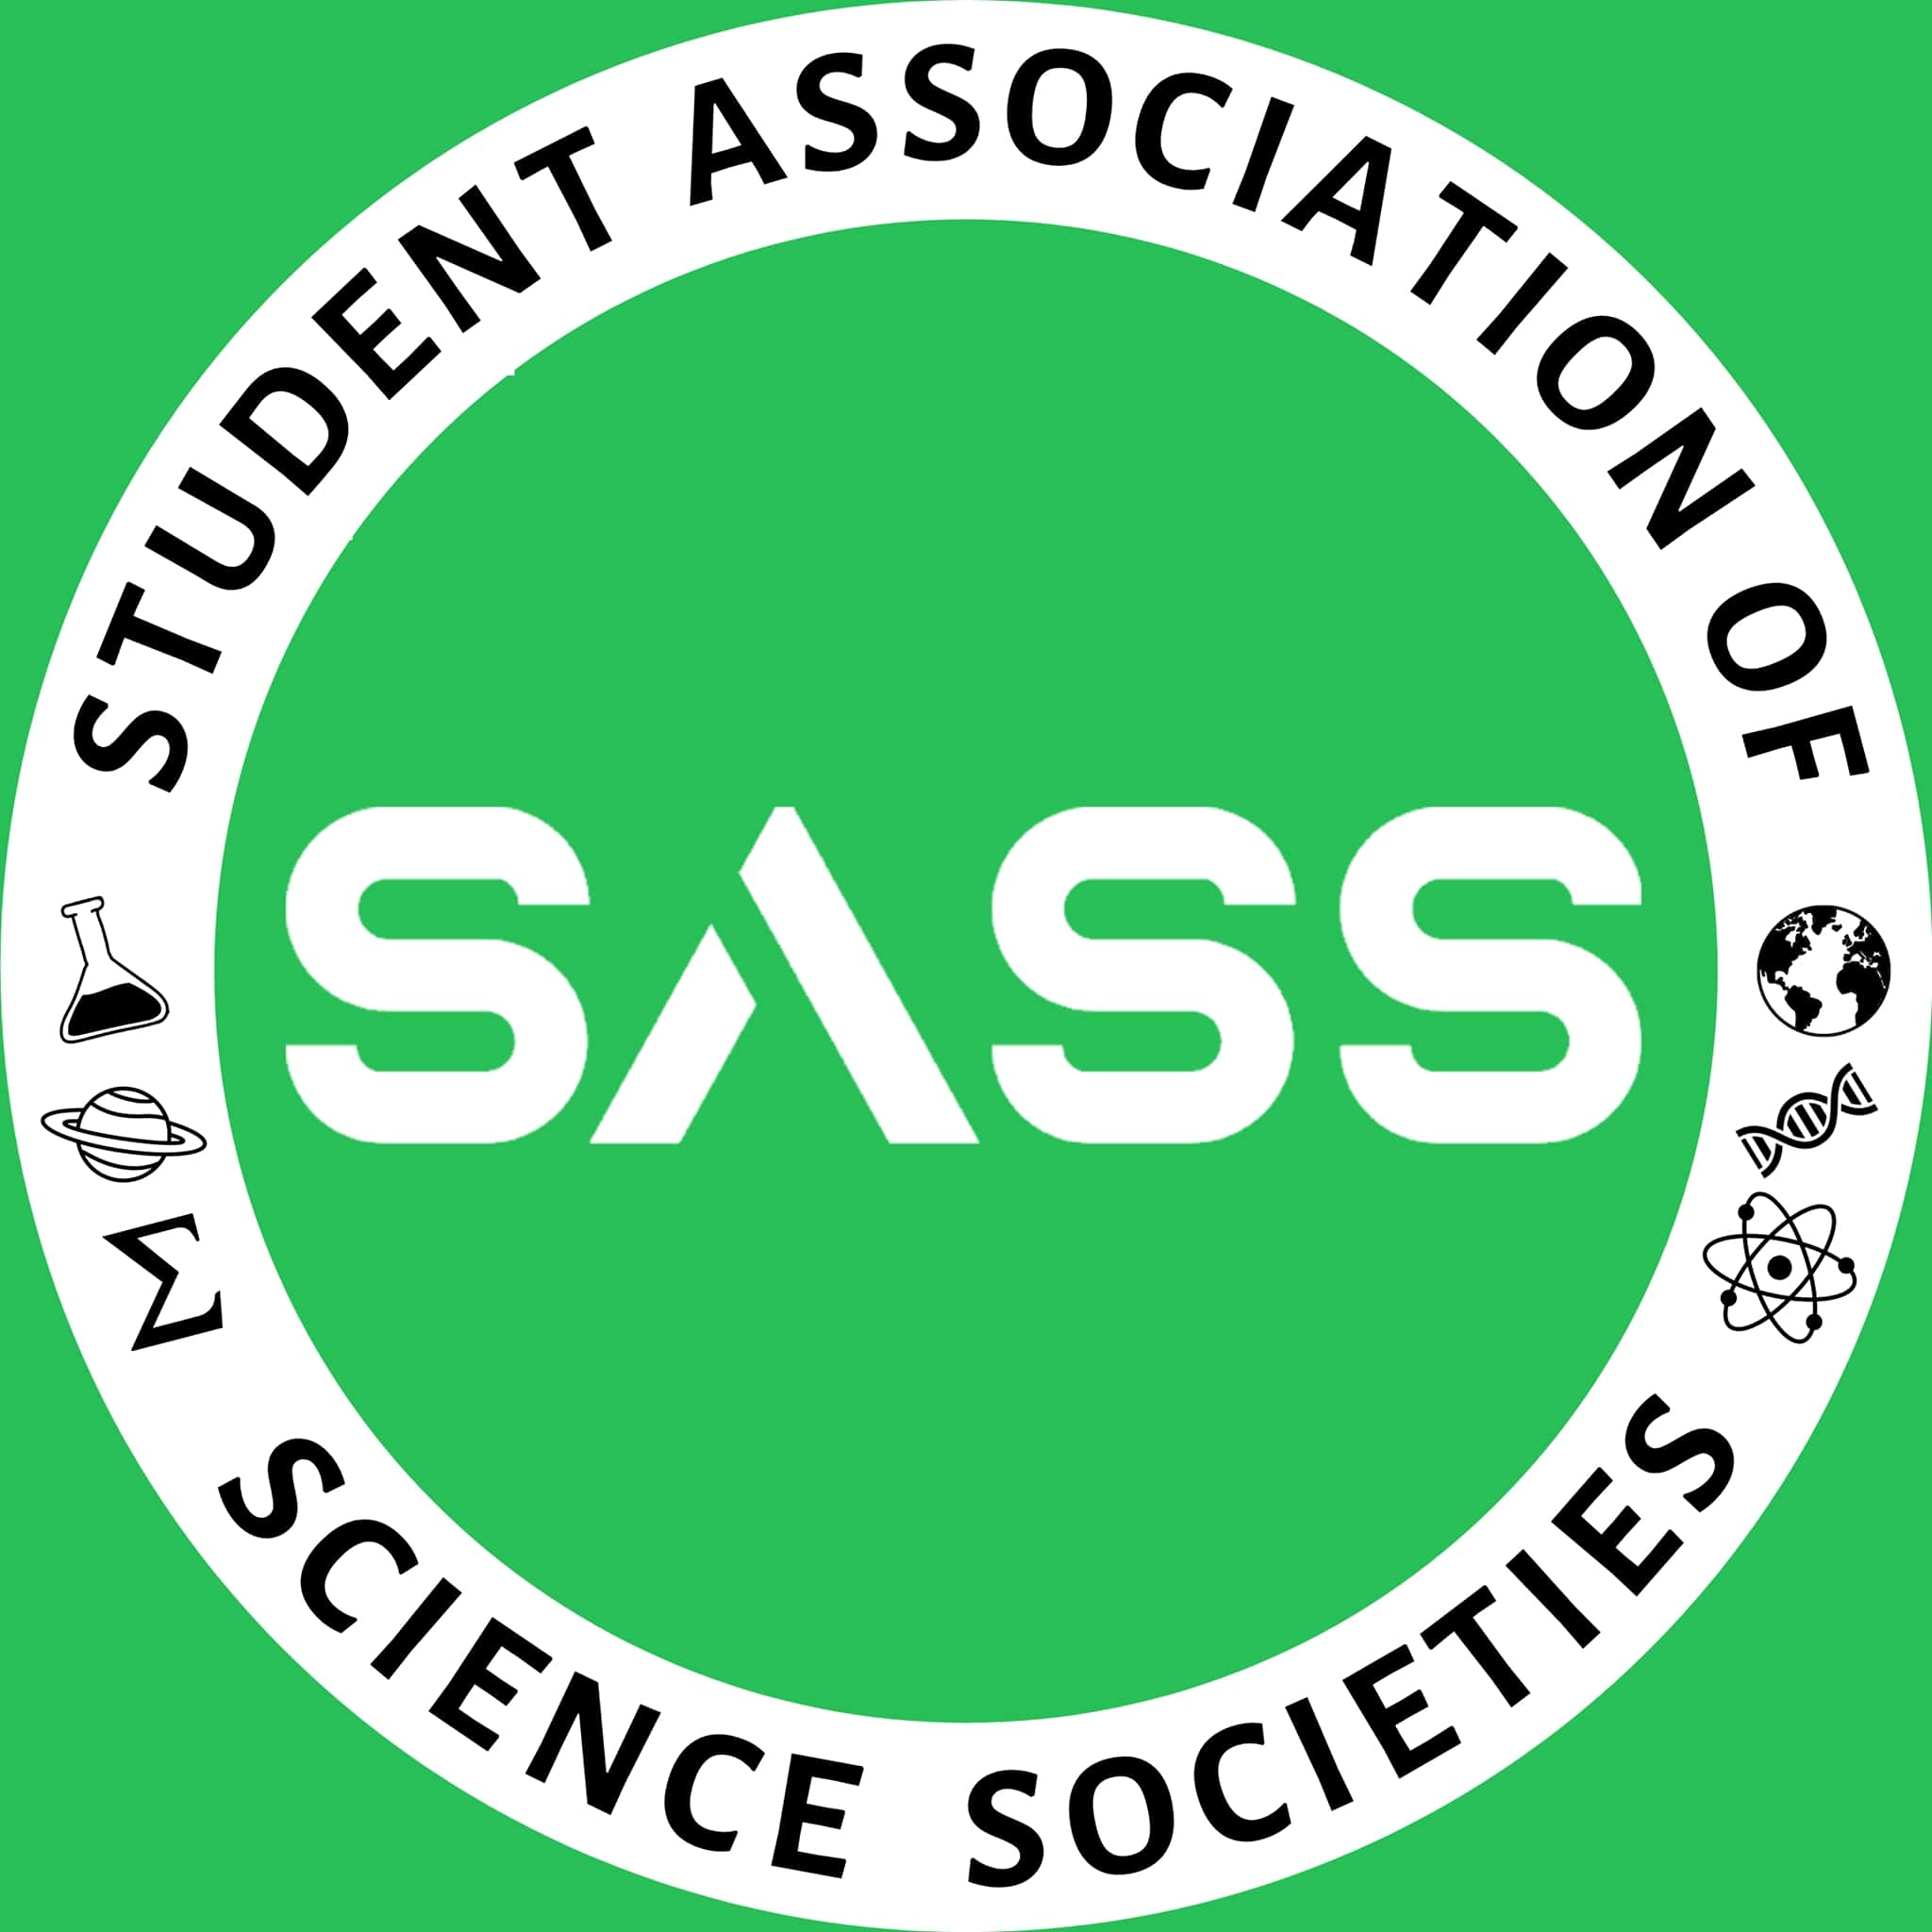 University of Queensland Student Association of Science Societies (UQSASS) - undefined